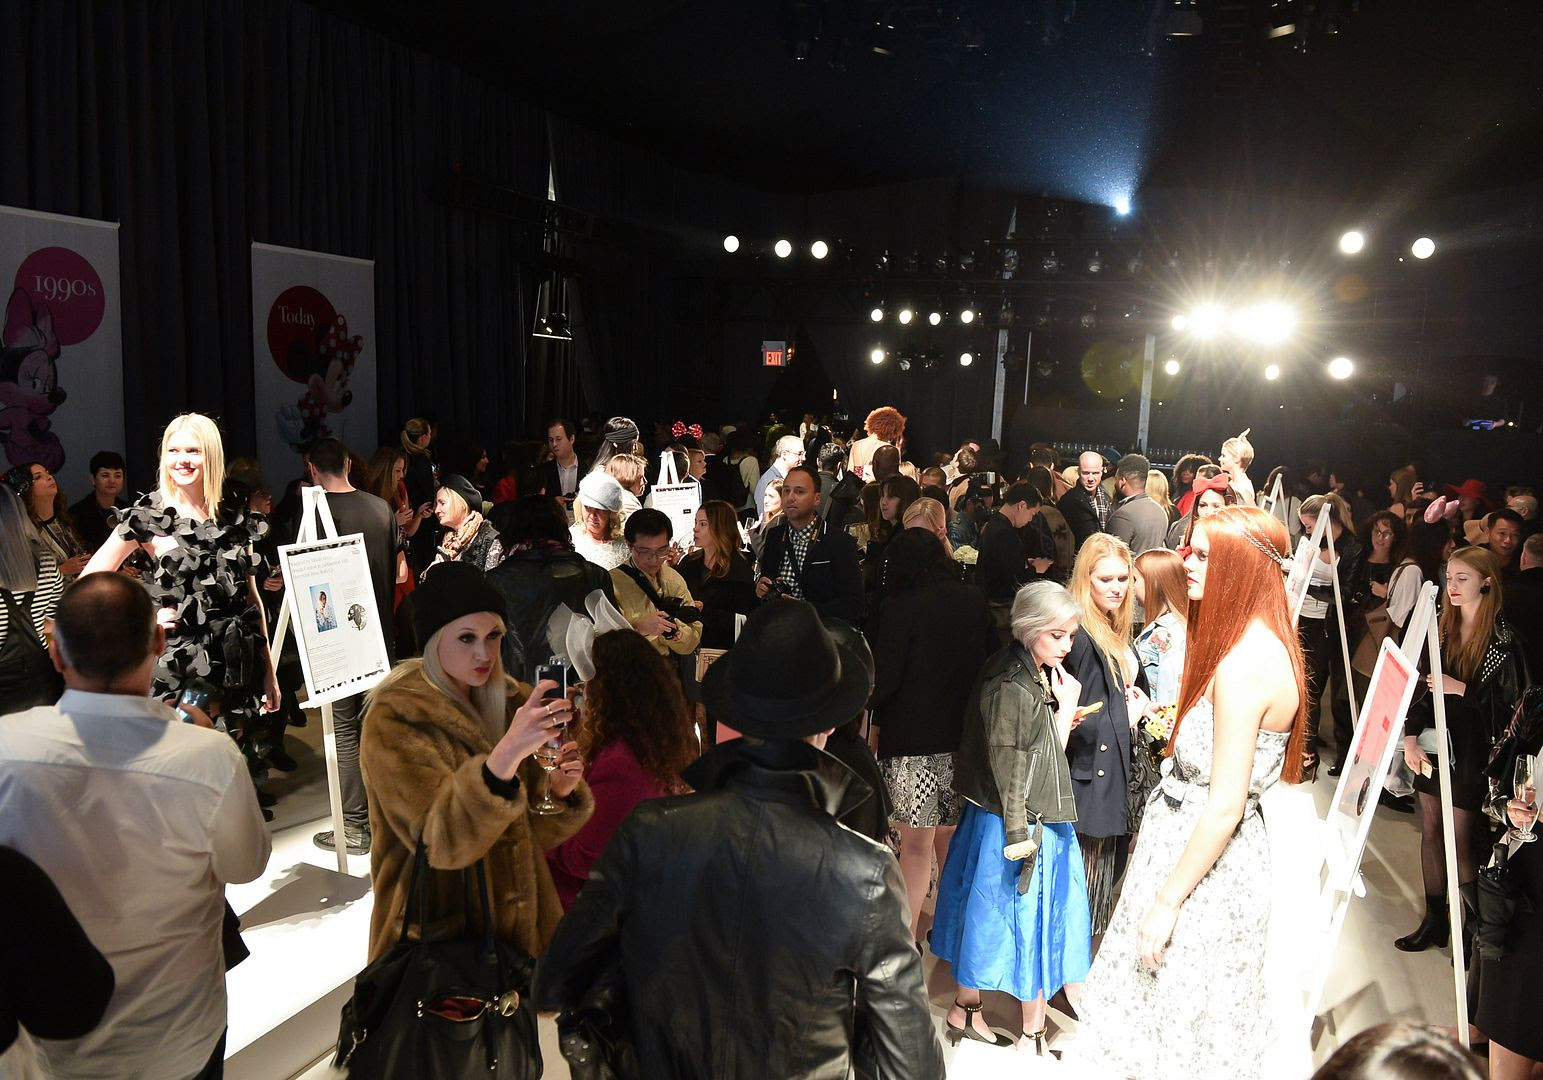 photo minniestyle-minniemouse-disney-beckermanblog-cailliandsambeckerman-disney-worldmastercardfashionweek-toronto-2_zpsc6437be3.jpg